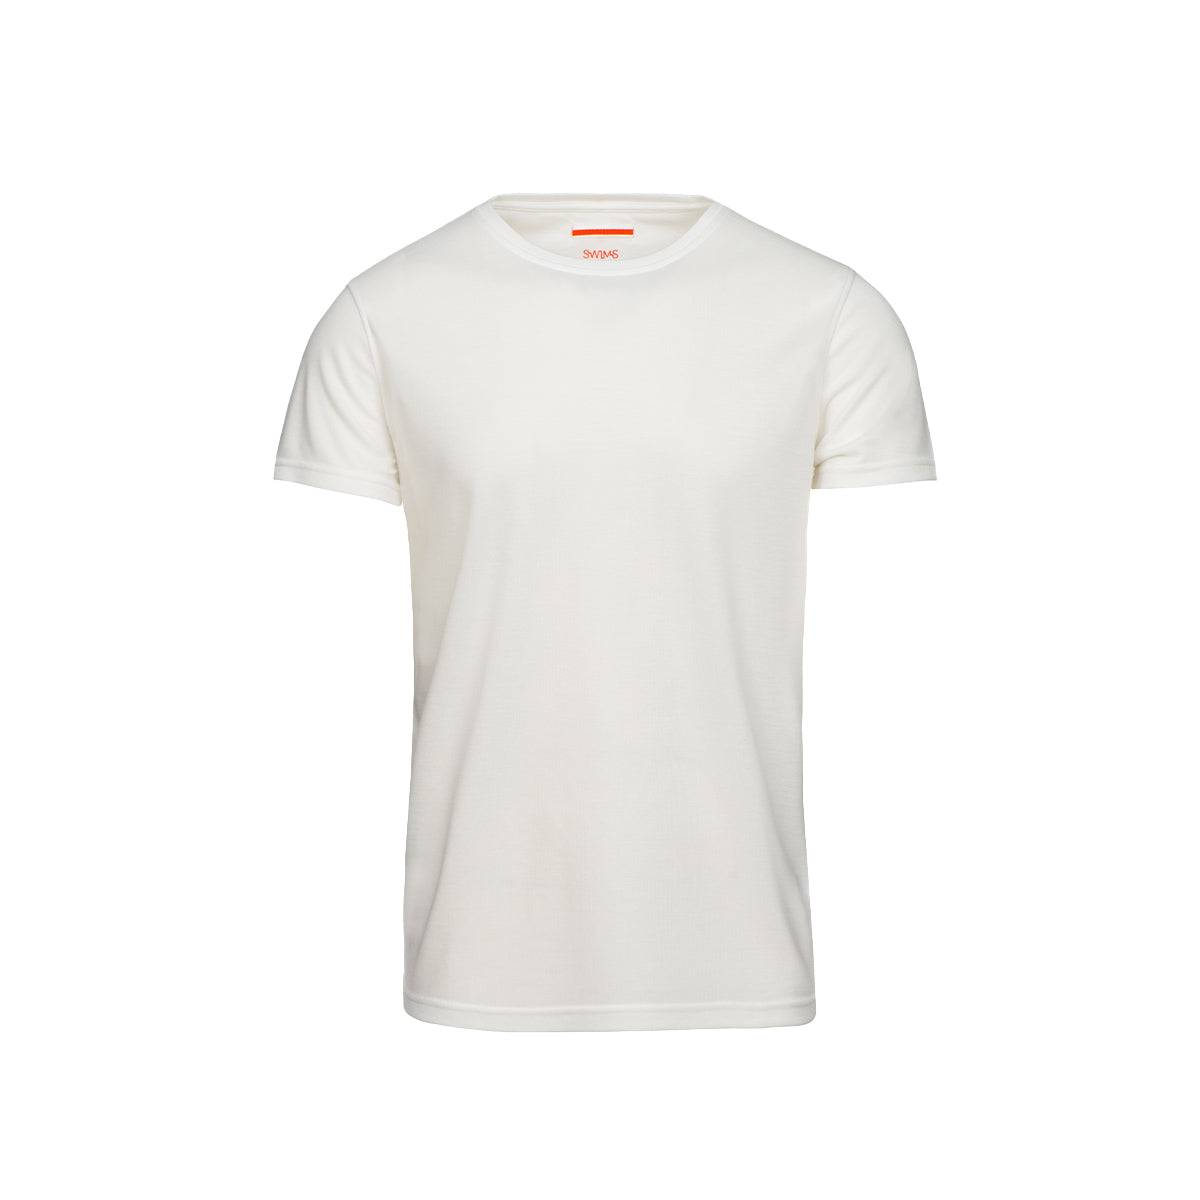 Citara O Neck T-Shirt - background::white,variant::white